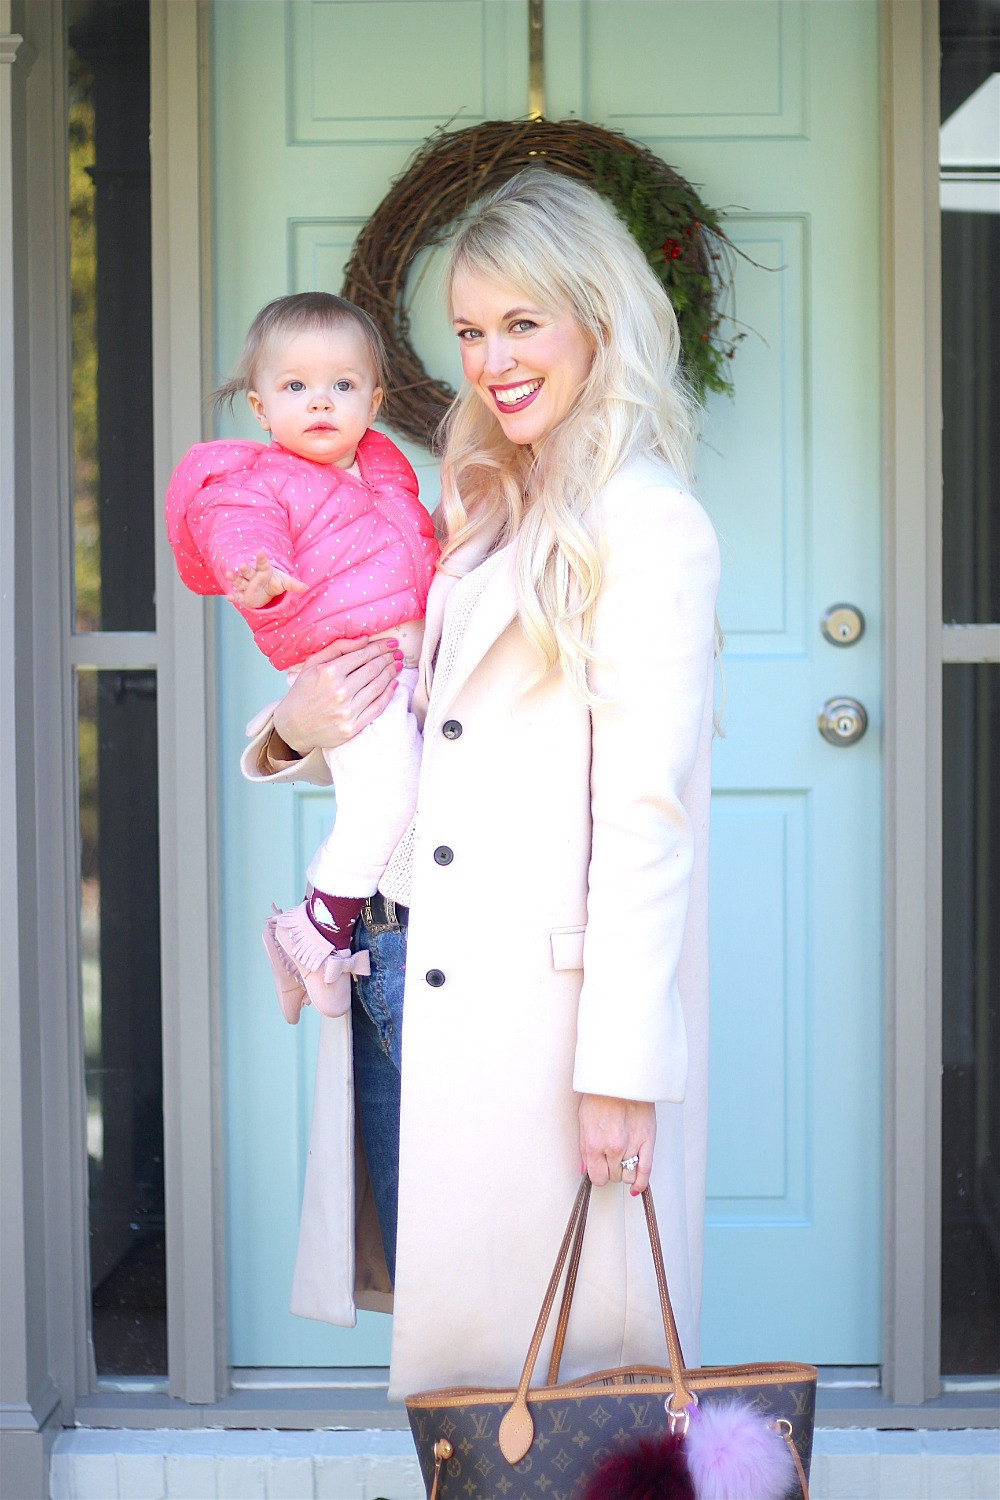 Mom and daughter stand in front of blue front door styled in layers of wintry pinks.